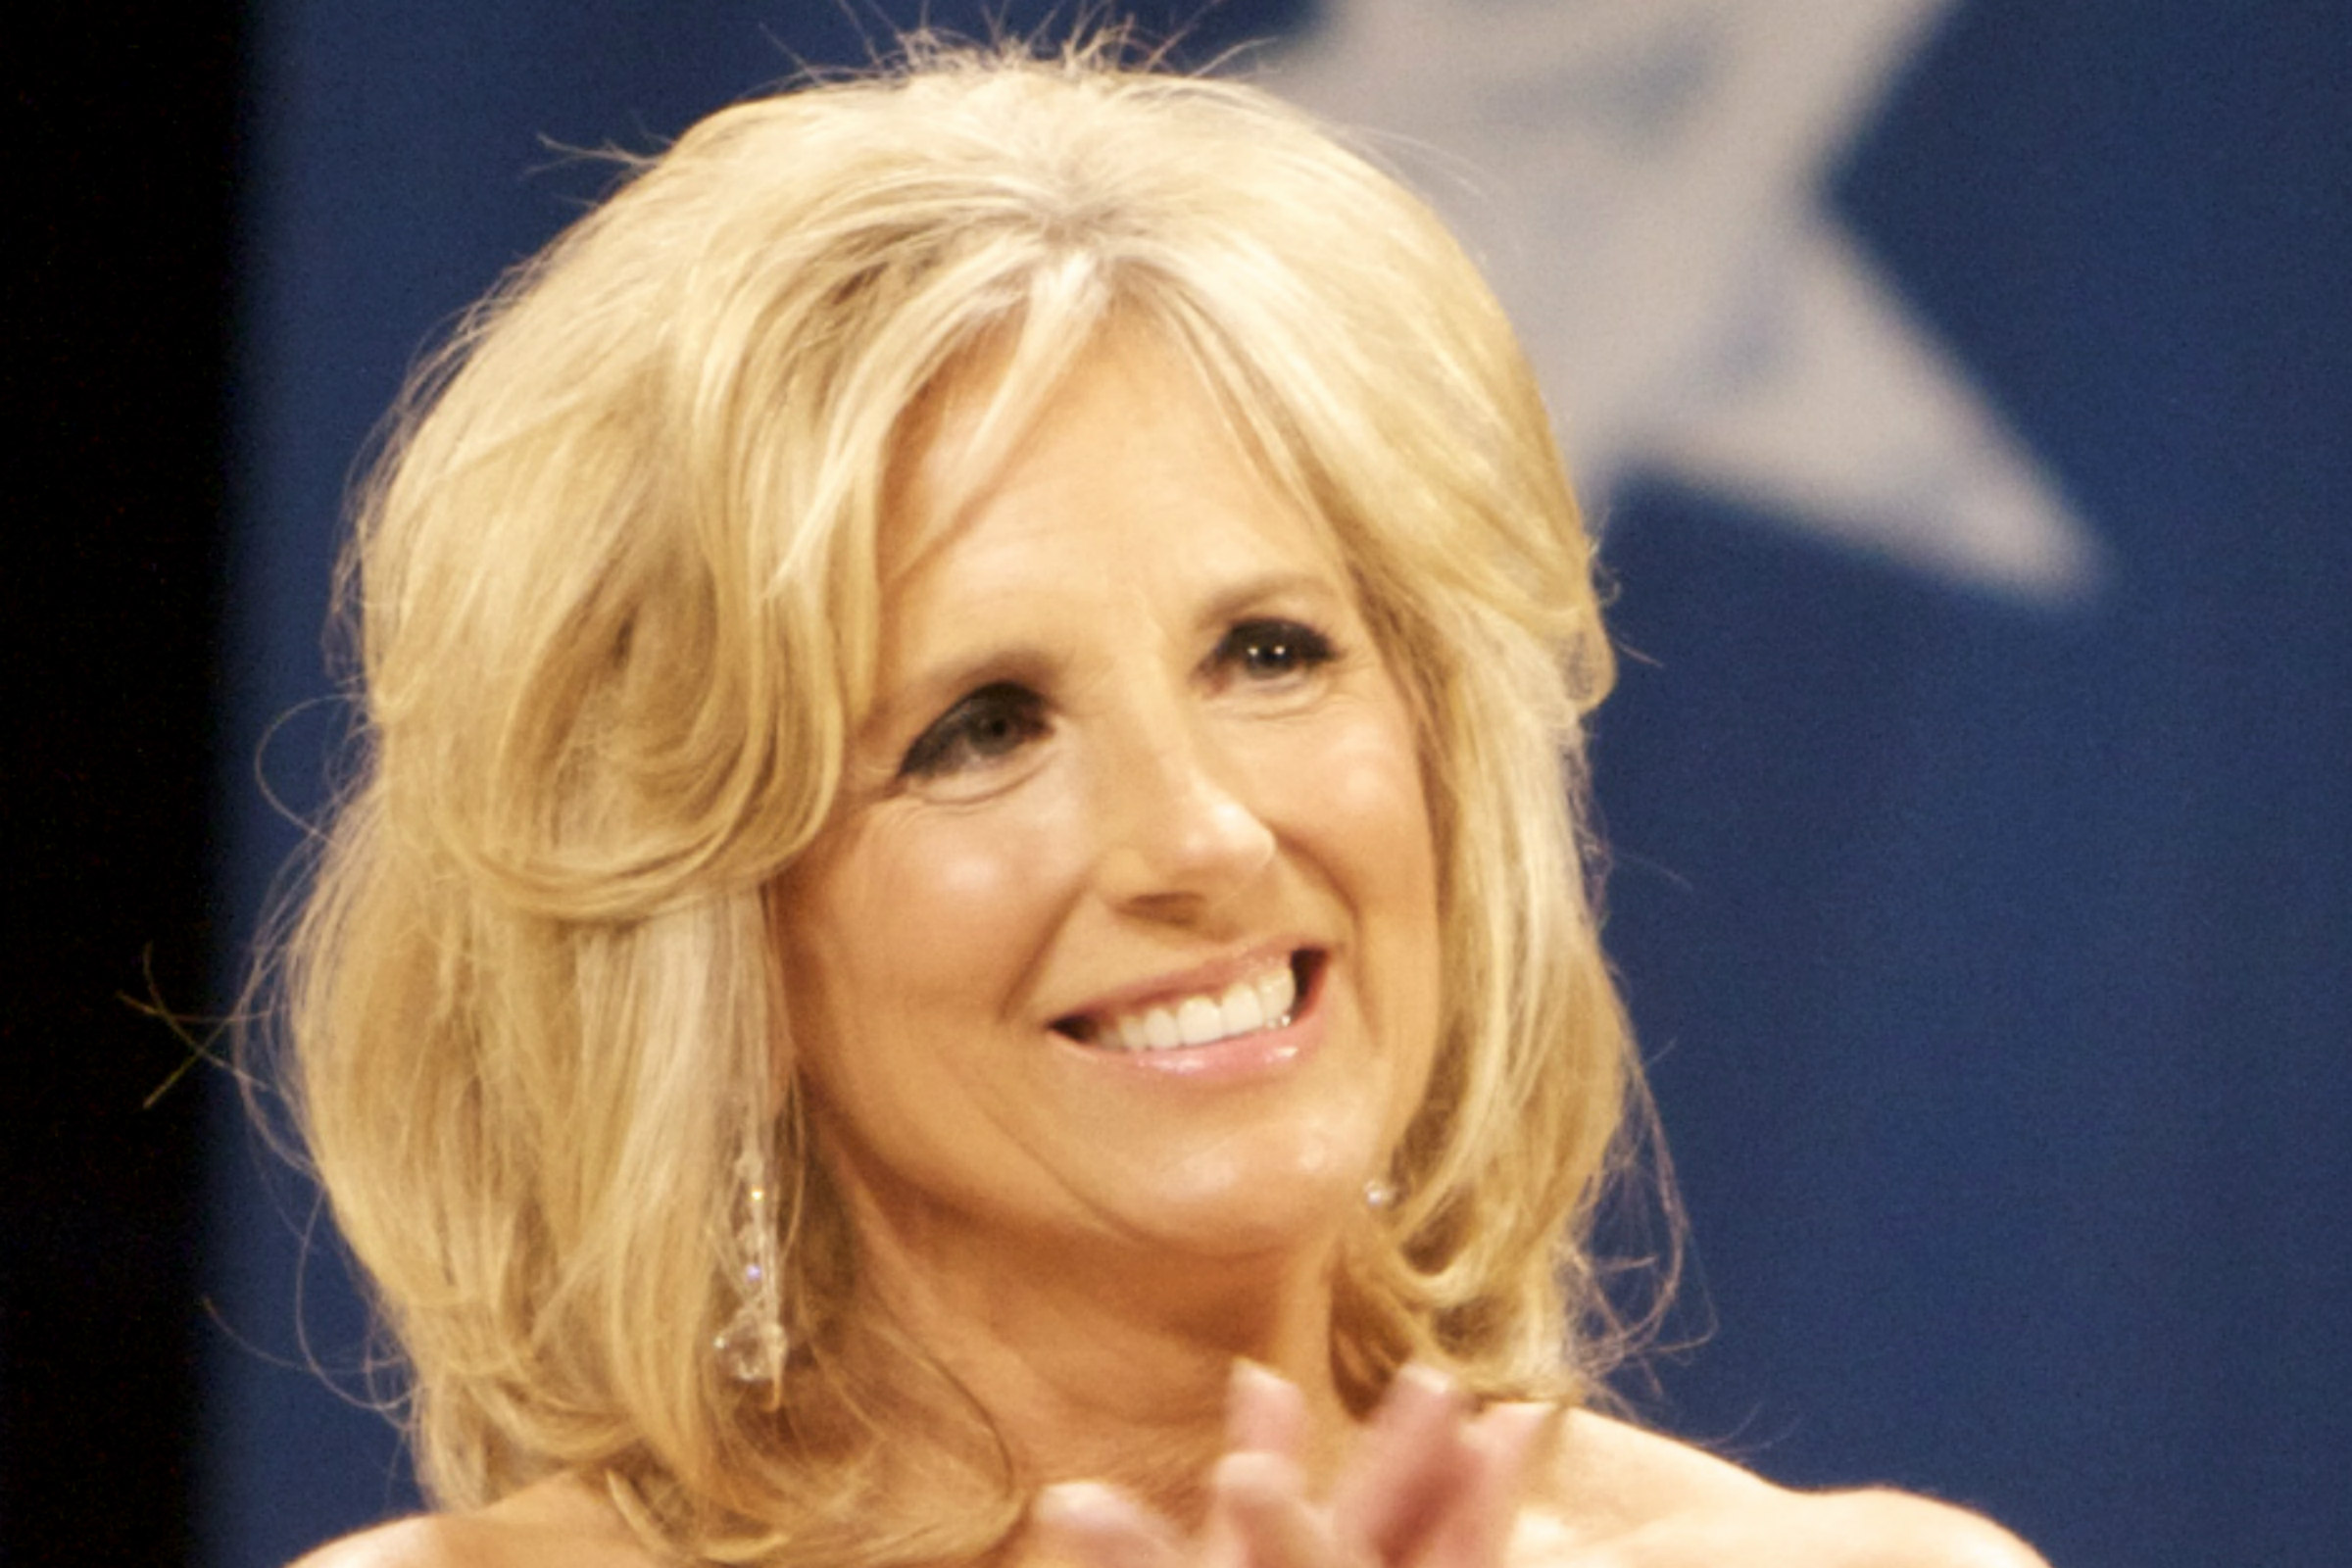 Jill Biden, an aging white woman with shoulder-length blond hair, smiles while wearing a red gown at the 2009 Inaugural Ball